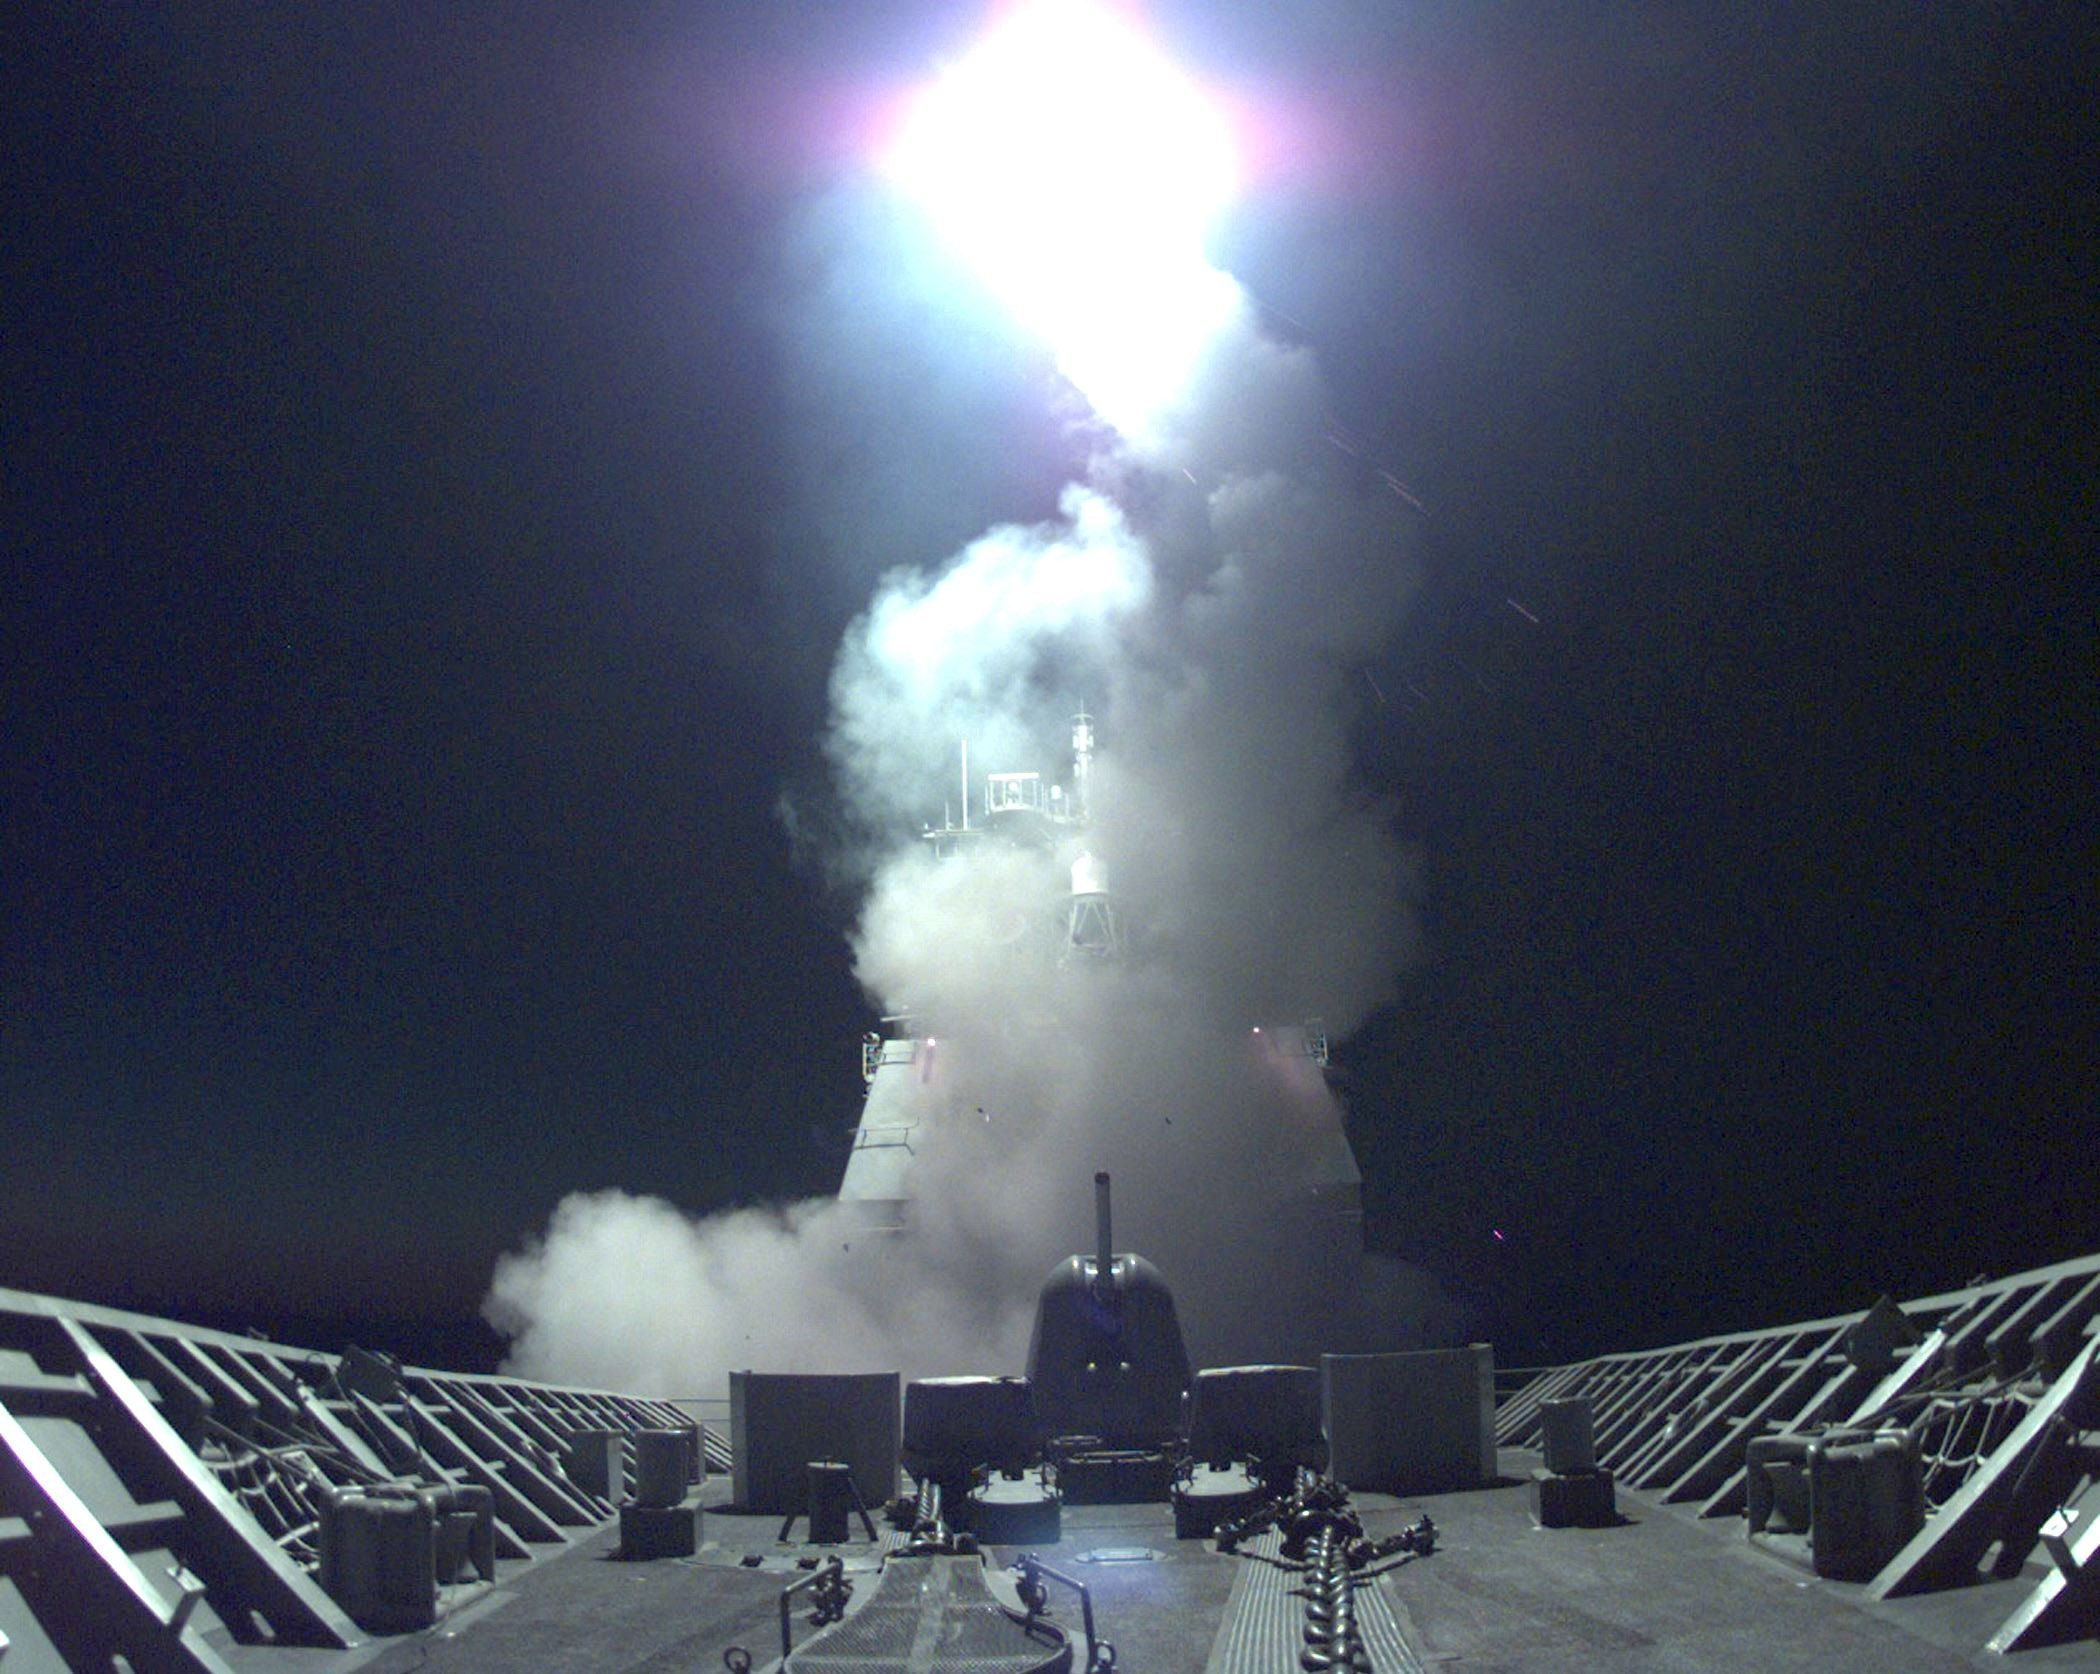 A Tomahawk cruise missile launches from the bow of the US Navy cruiser USS Philippine Sea at targets throughout Yugoslavia and Kosovo, 24 March, 1999.